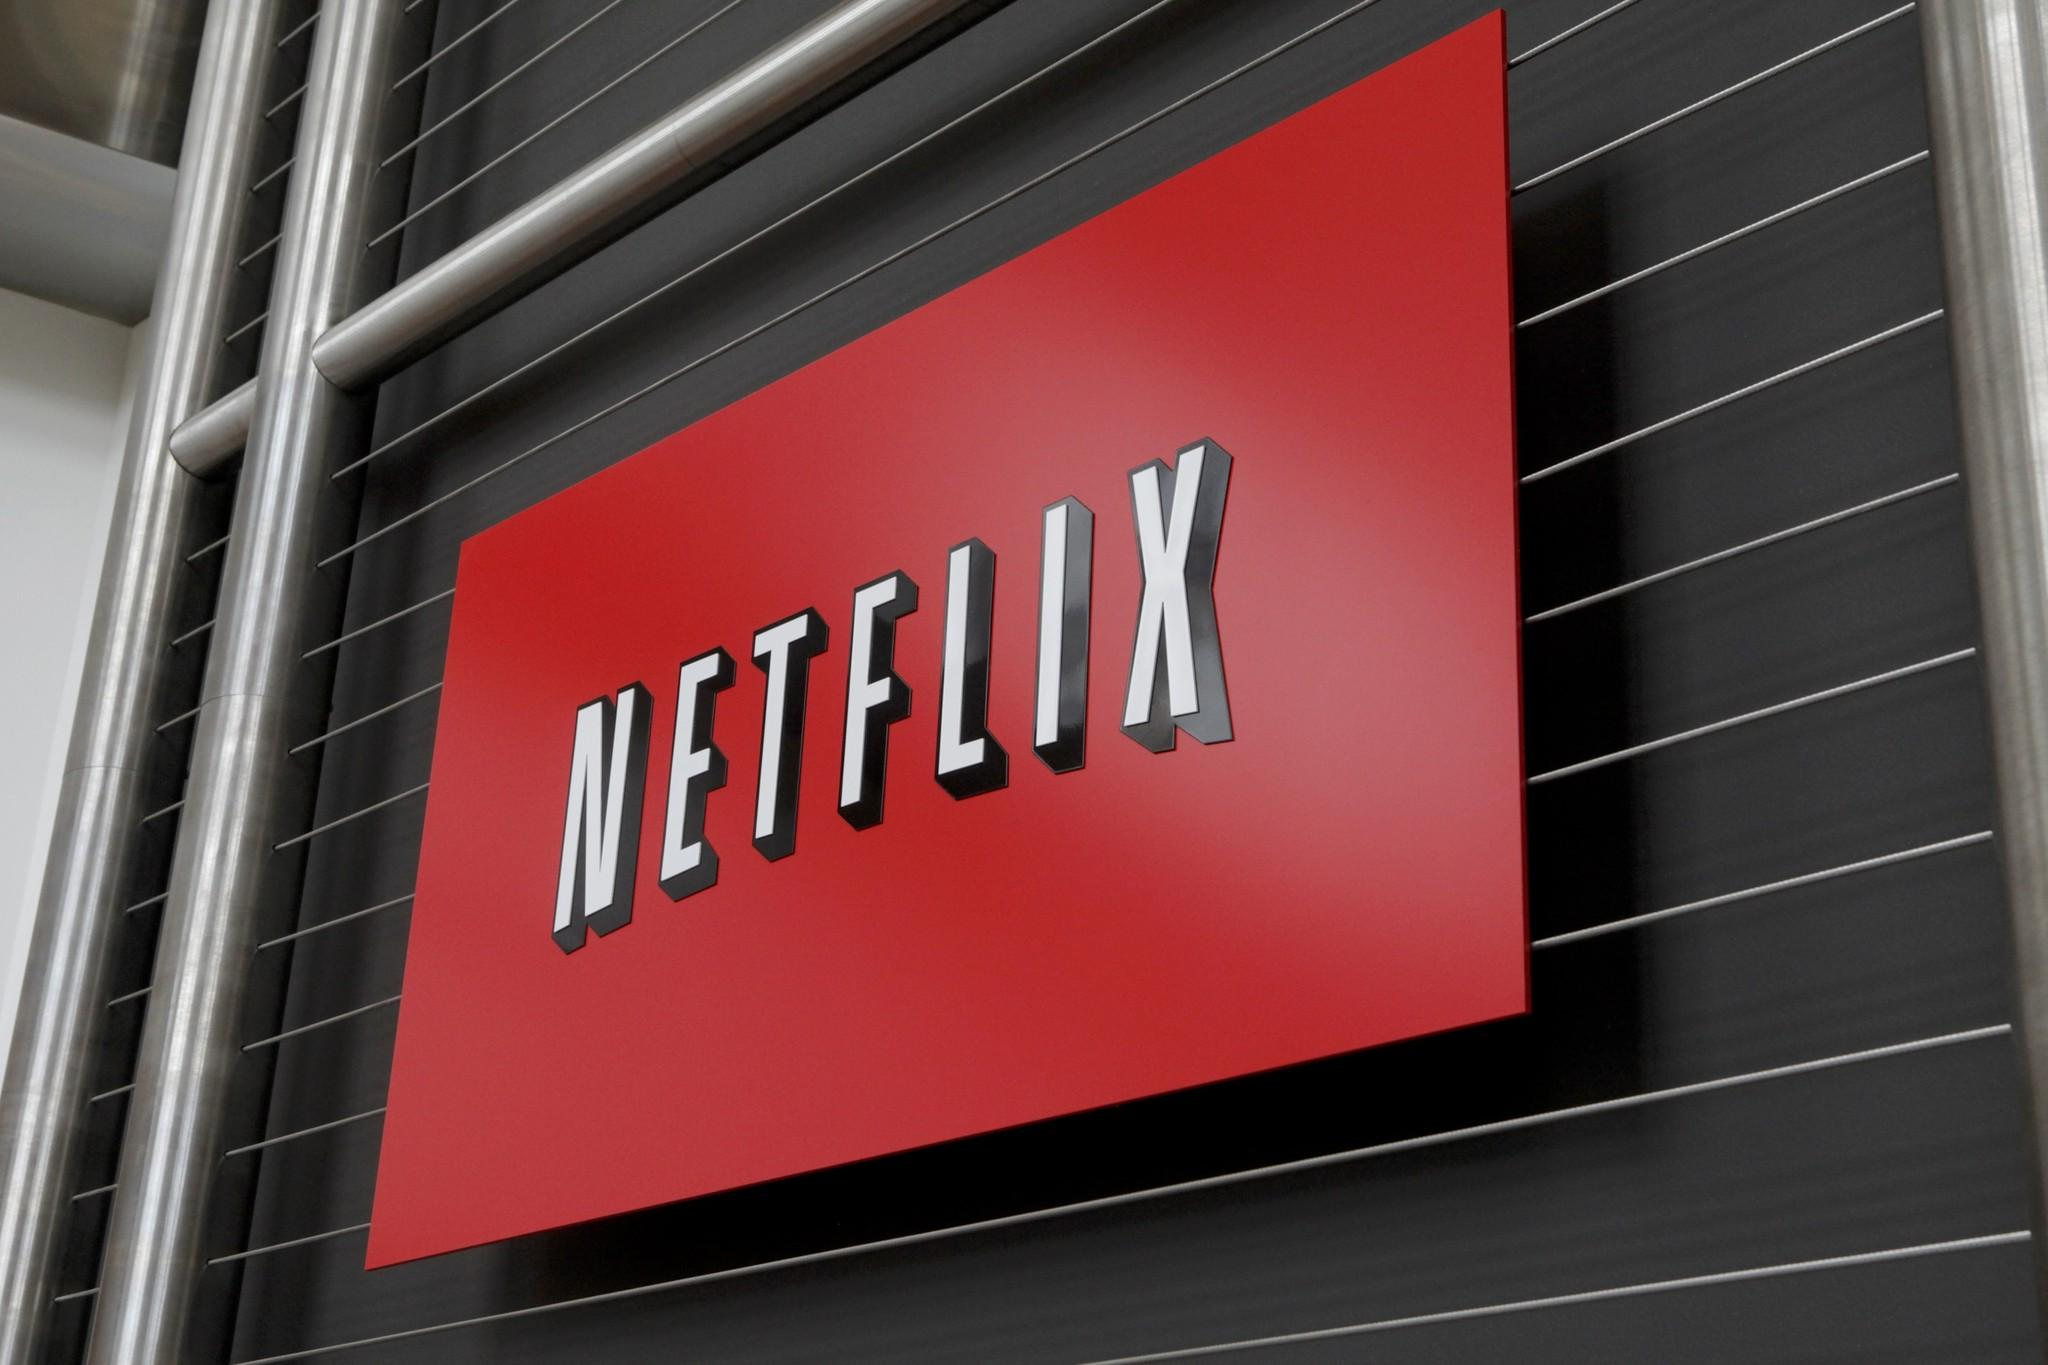 chi-netflix-takes-on-debt-to-fund-european-exp-001